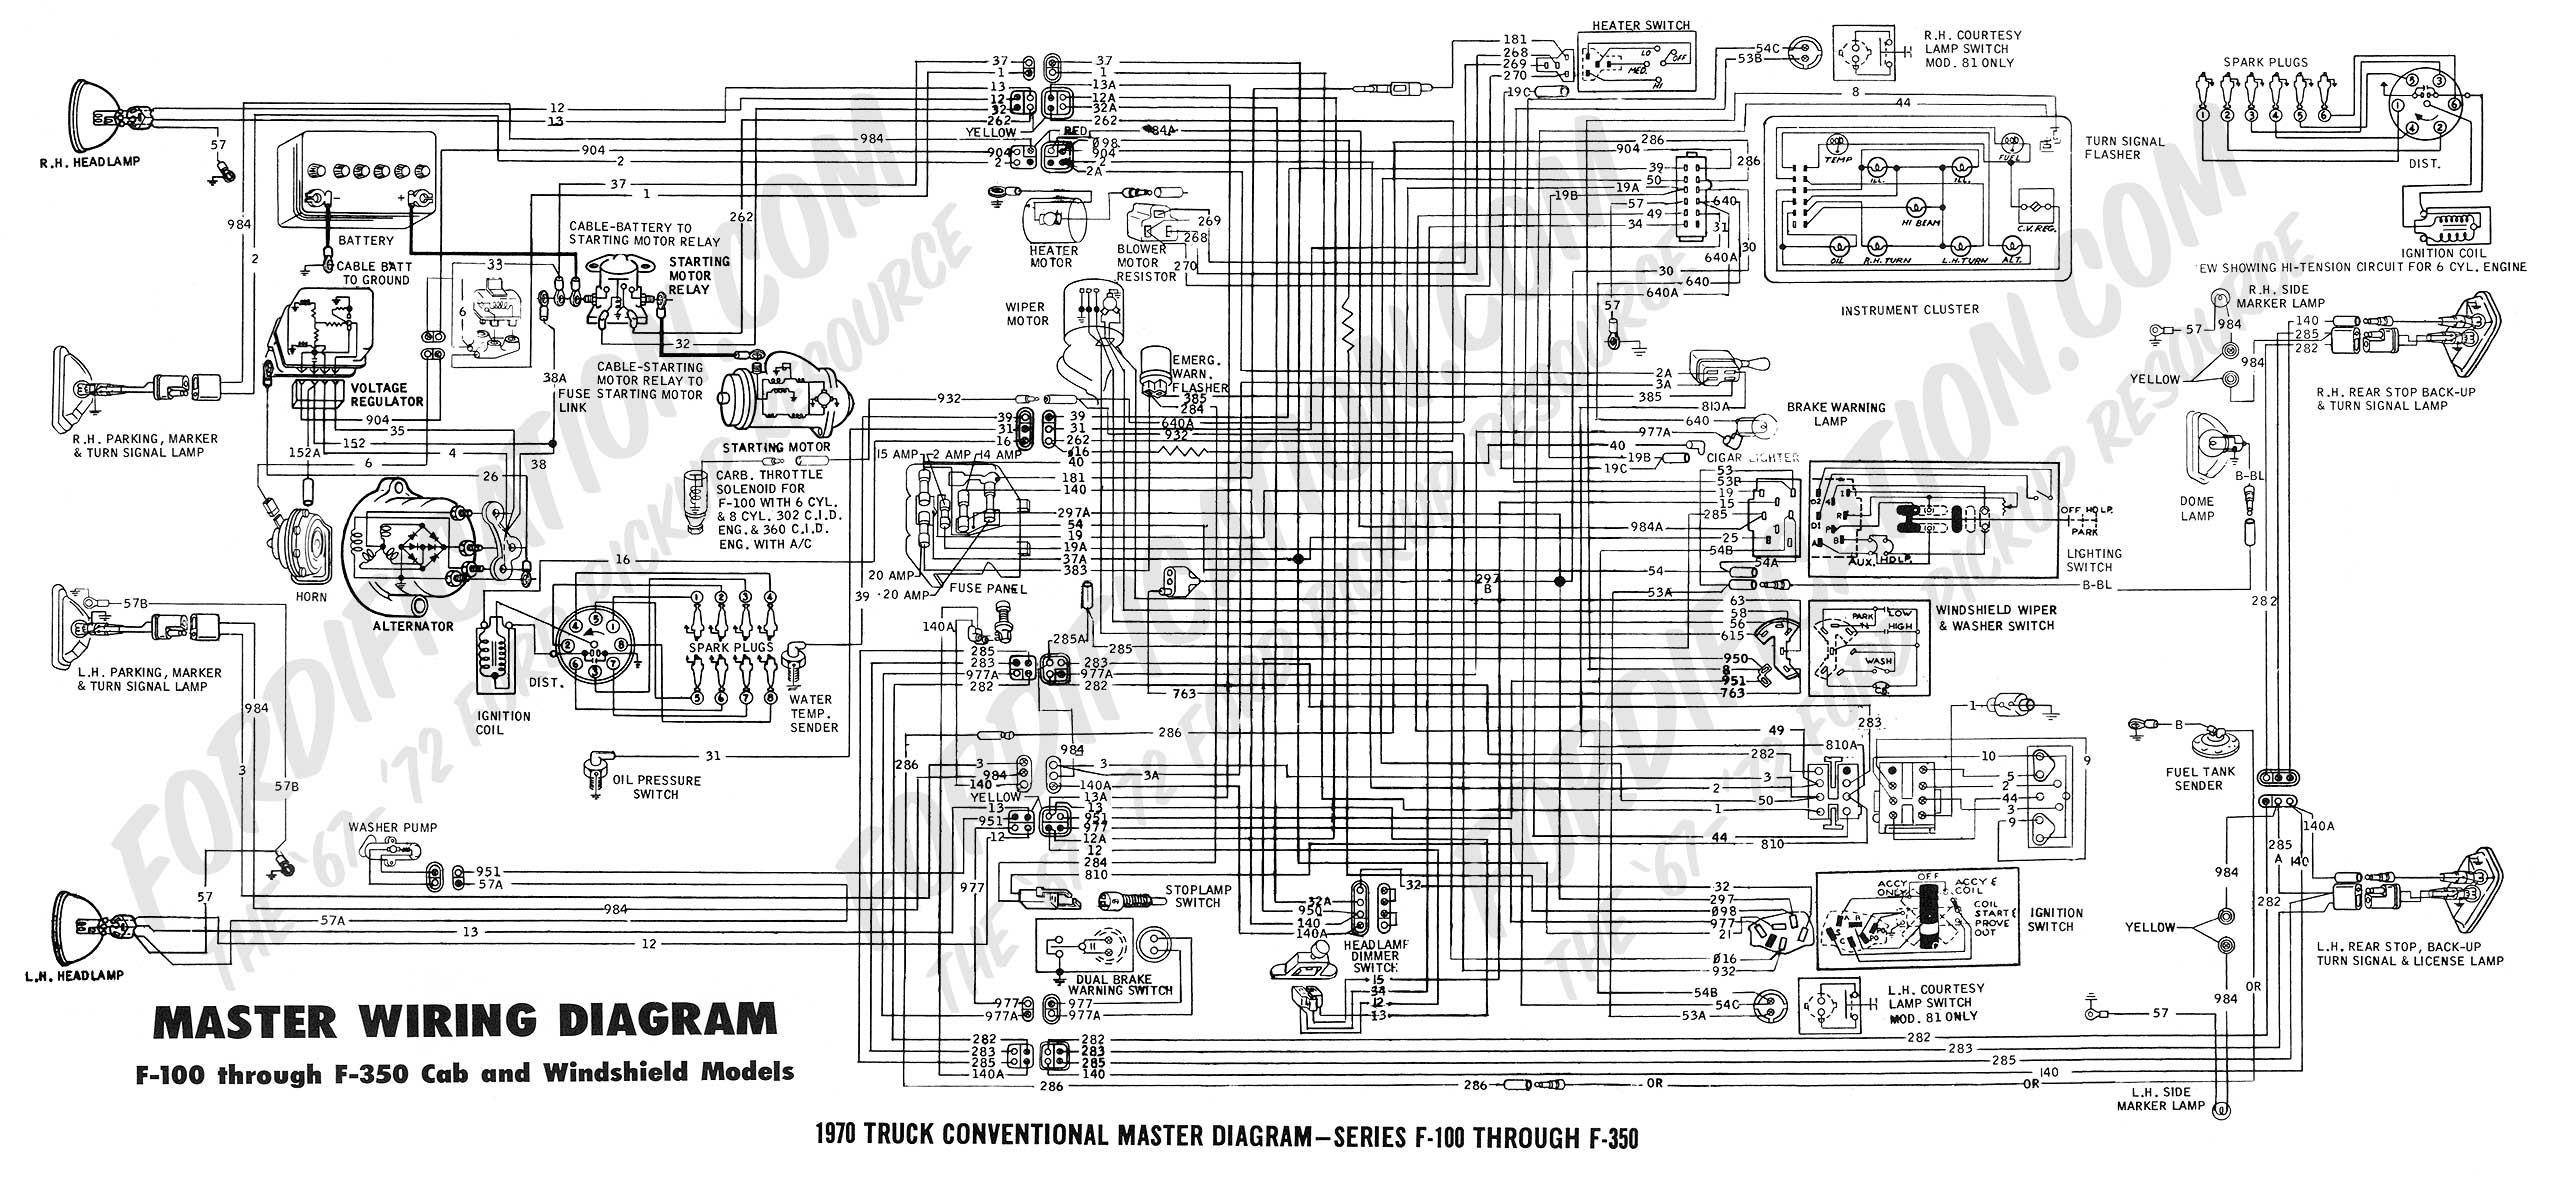 1960 jeep wiring harness diagram 1989 f350 wiring diagram 1989 wiring diagrams wiring diagram 70 master